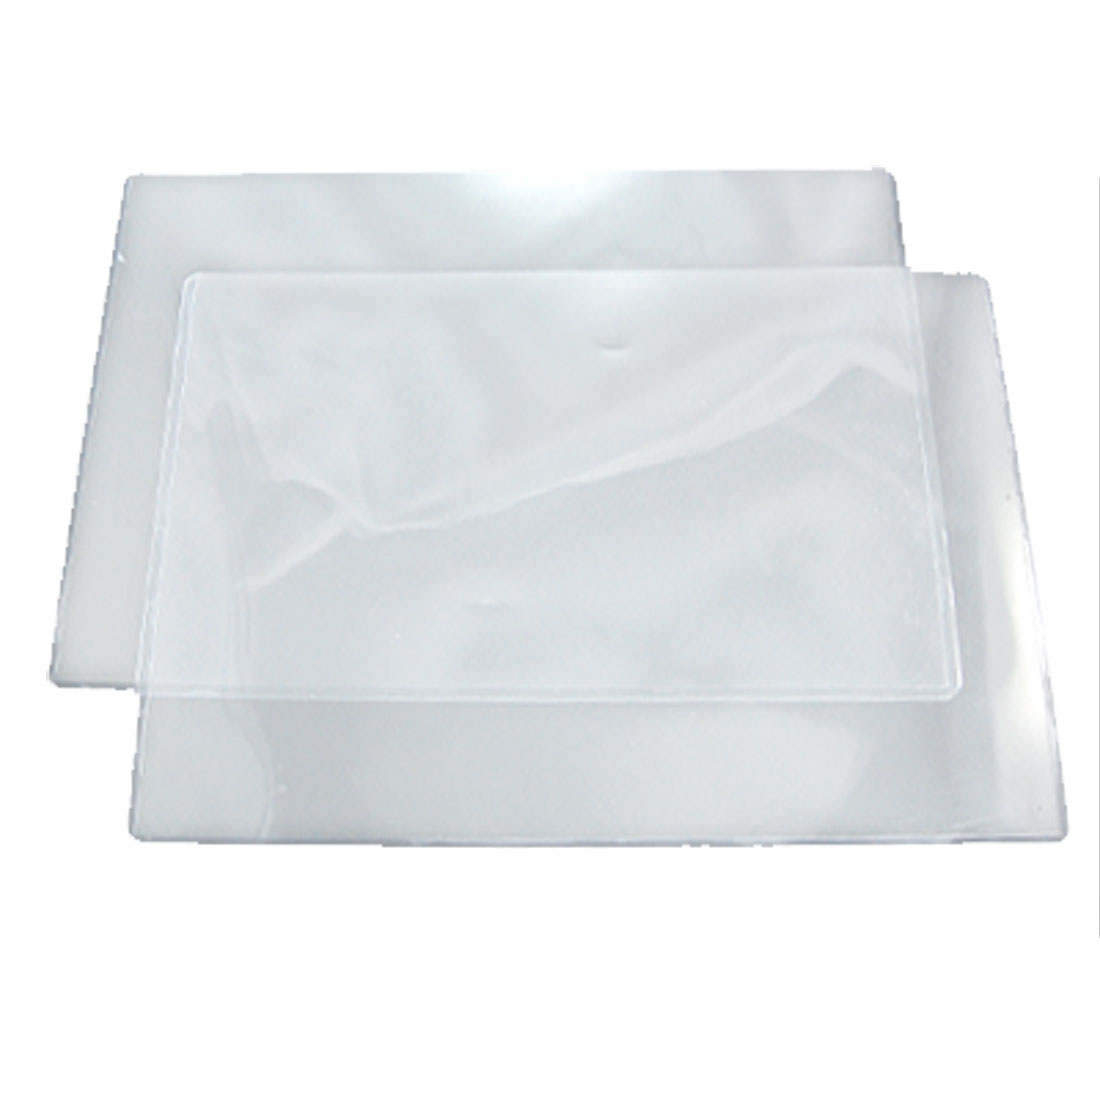 Clear Plastic A4 Document File Cards Holder Case 2 Pcs